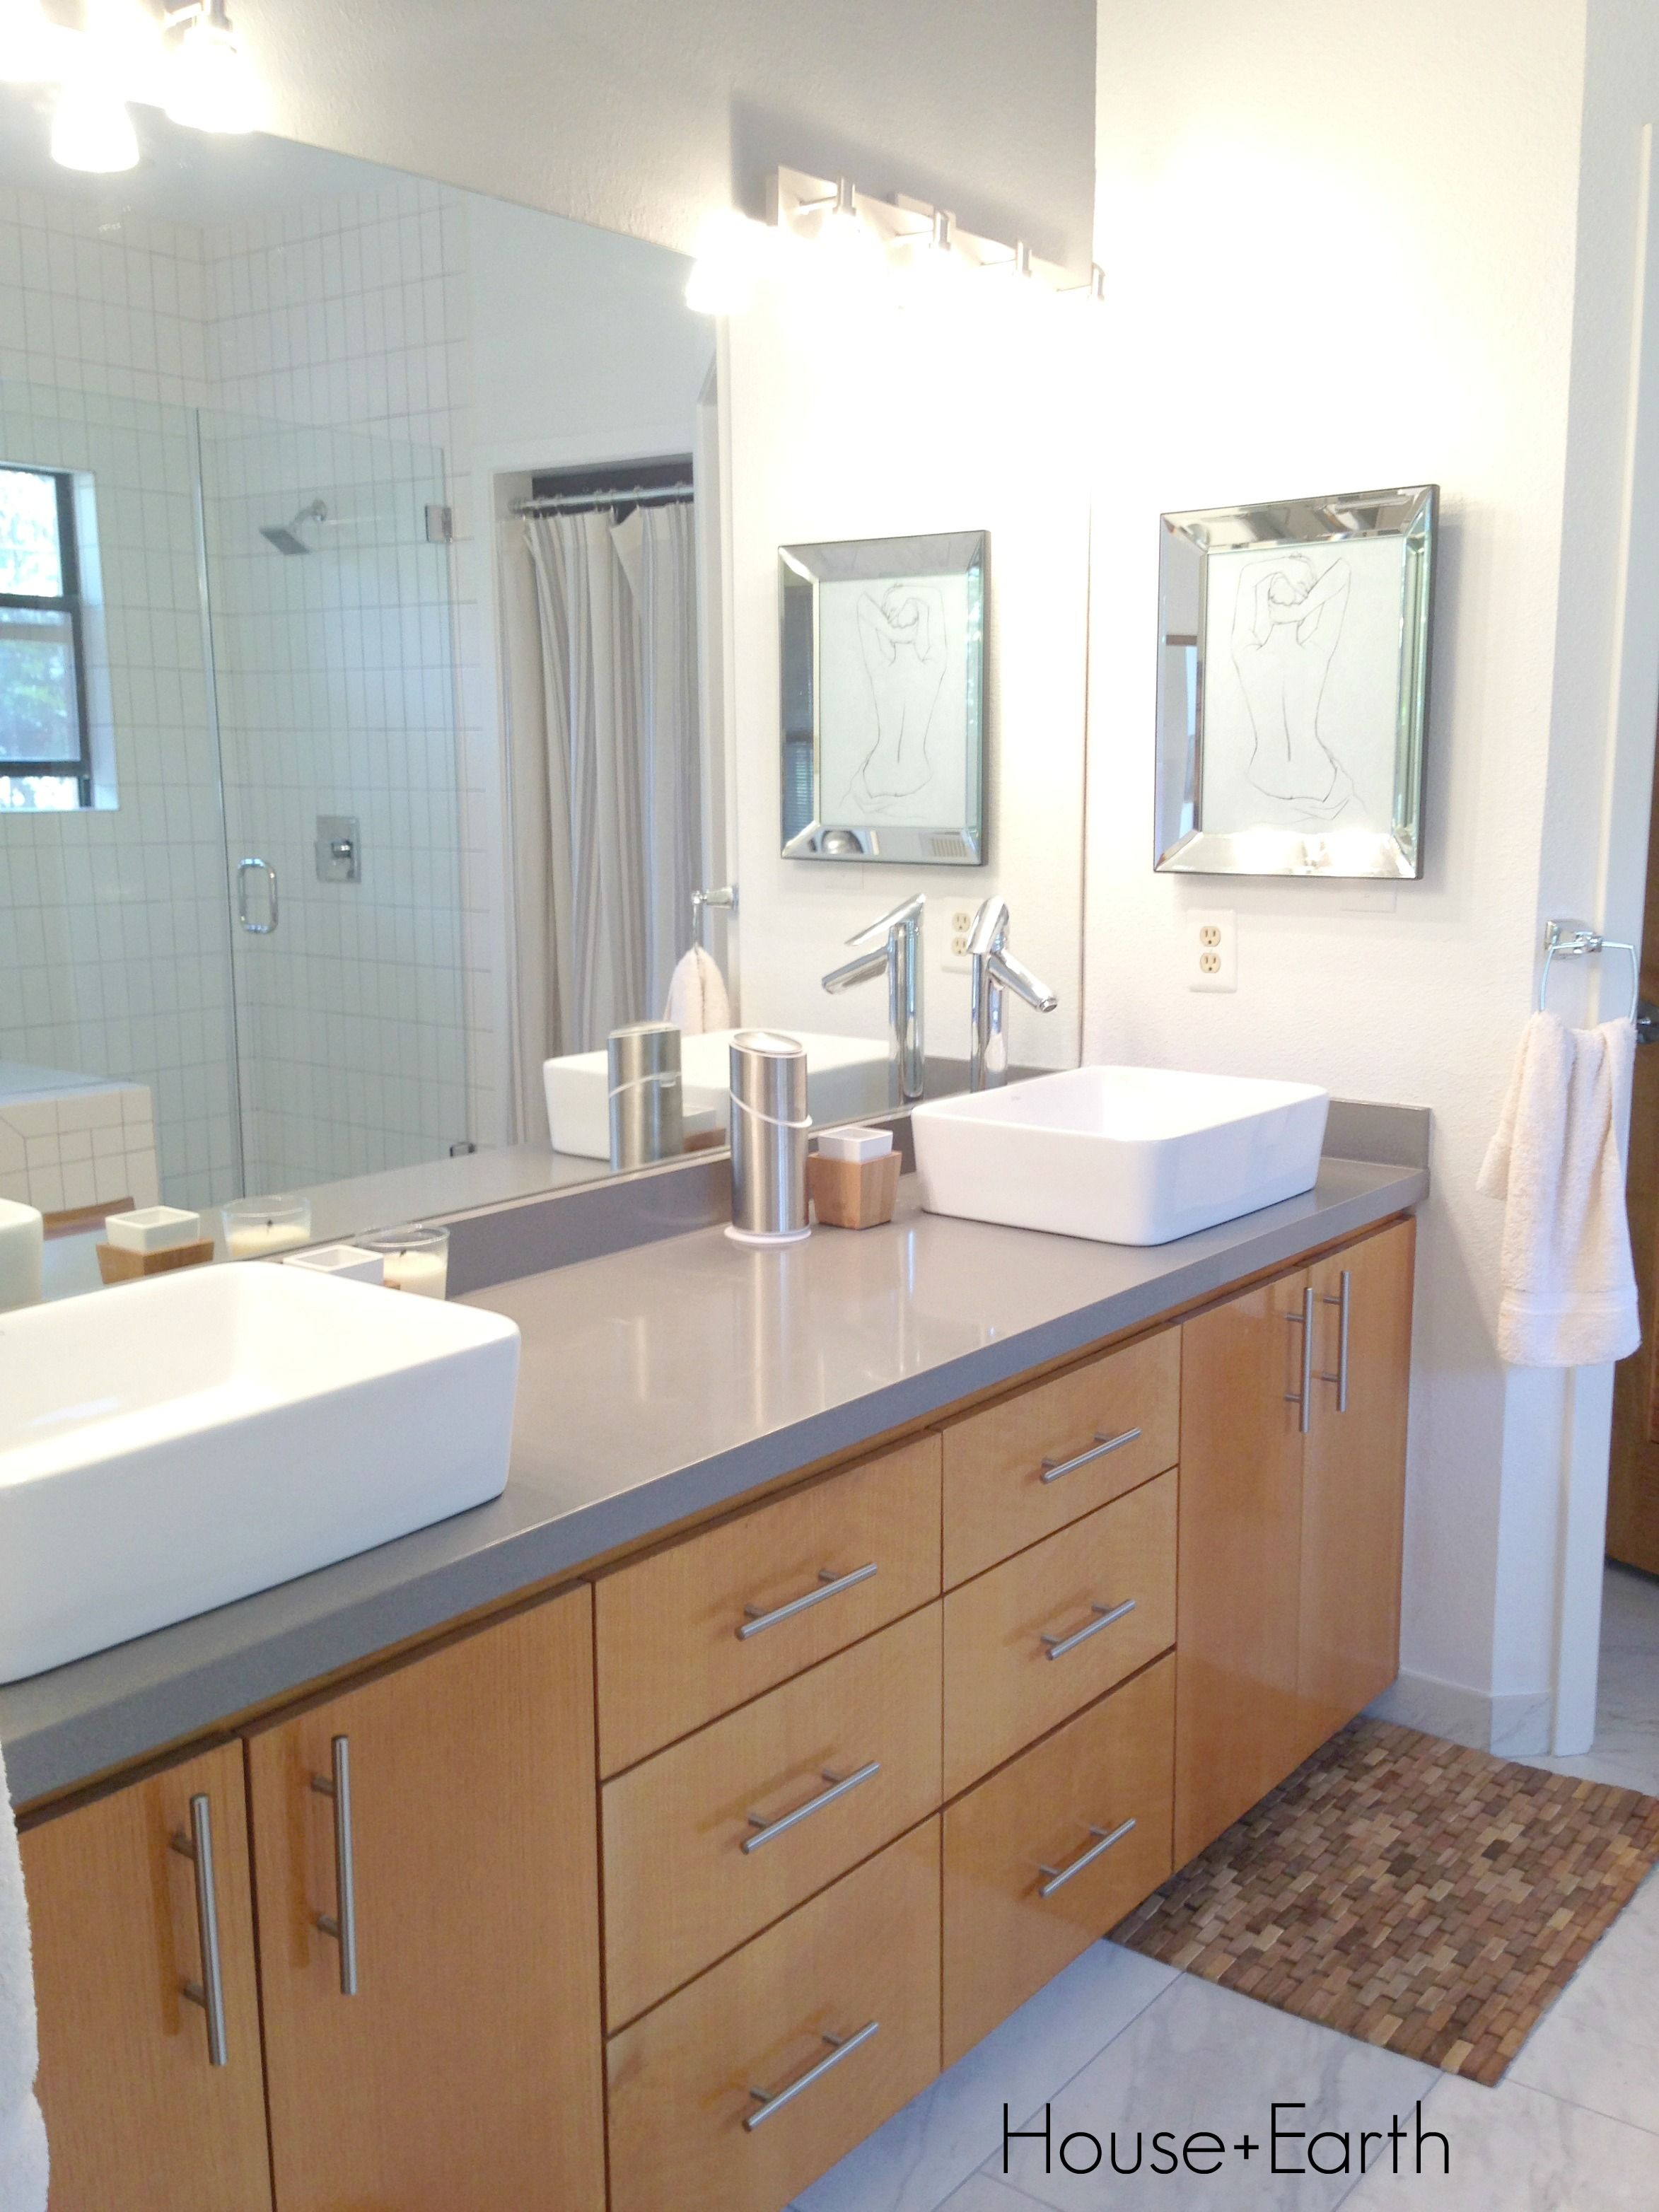 Bathroom Renovation Silestone Grey Expo Counter Top White Vessel Sinks Stained Cabinetry And Faux Marble Tiled Floor